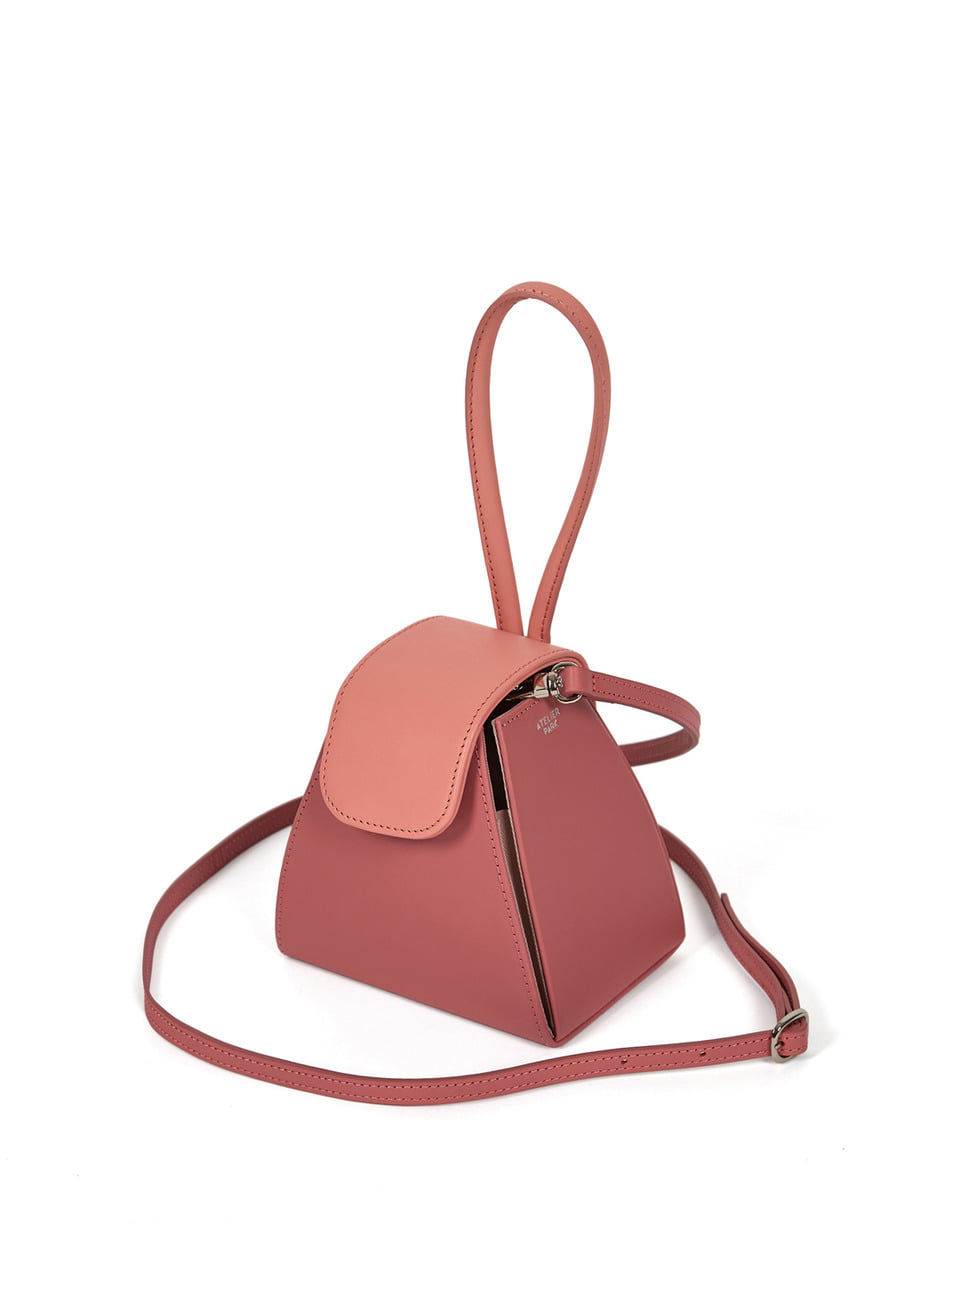 COLOR BLOCK HANDLE BAG -PINK/ BABY PINK ( 레더스트랩 포함 )